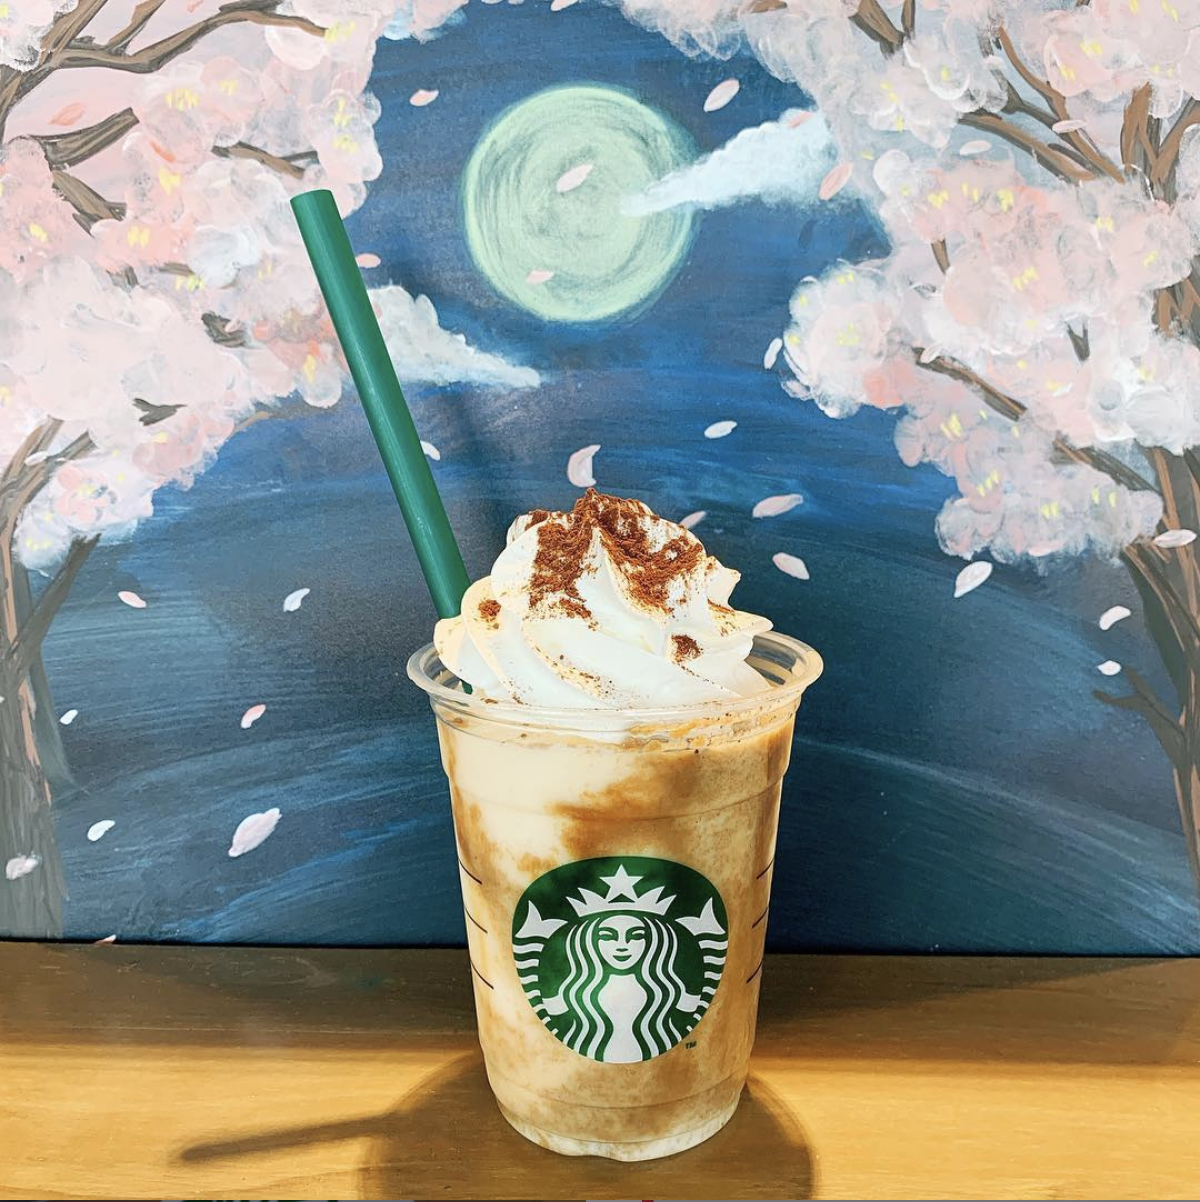 Starbucks Introduced A Classic Tiramisu Frappuccino And It Tastes Exactly Like The Real Thing